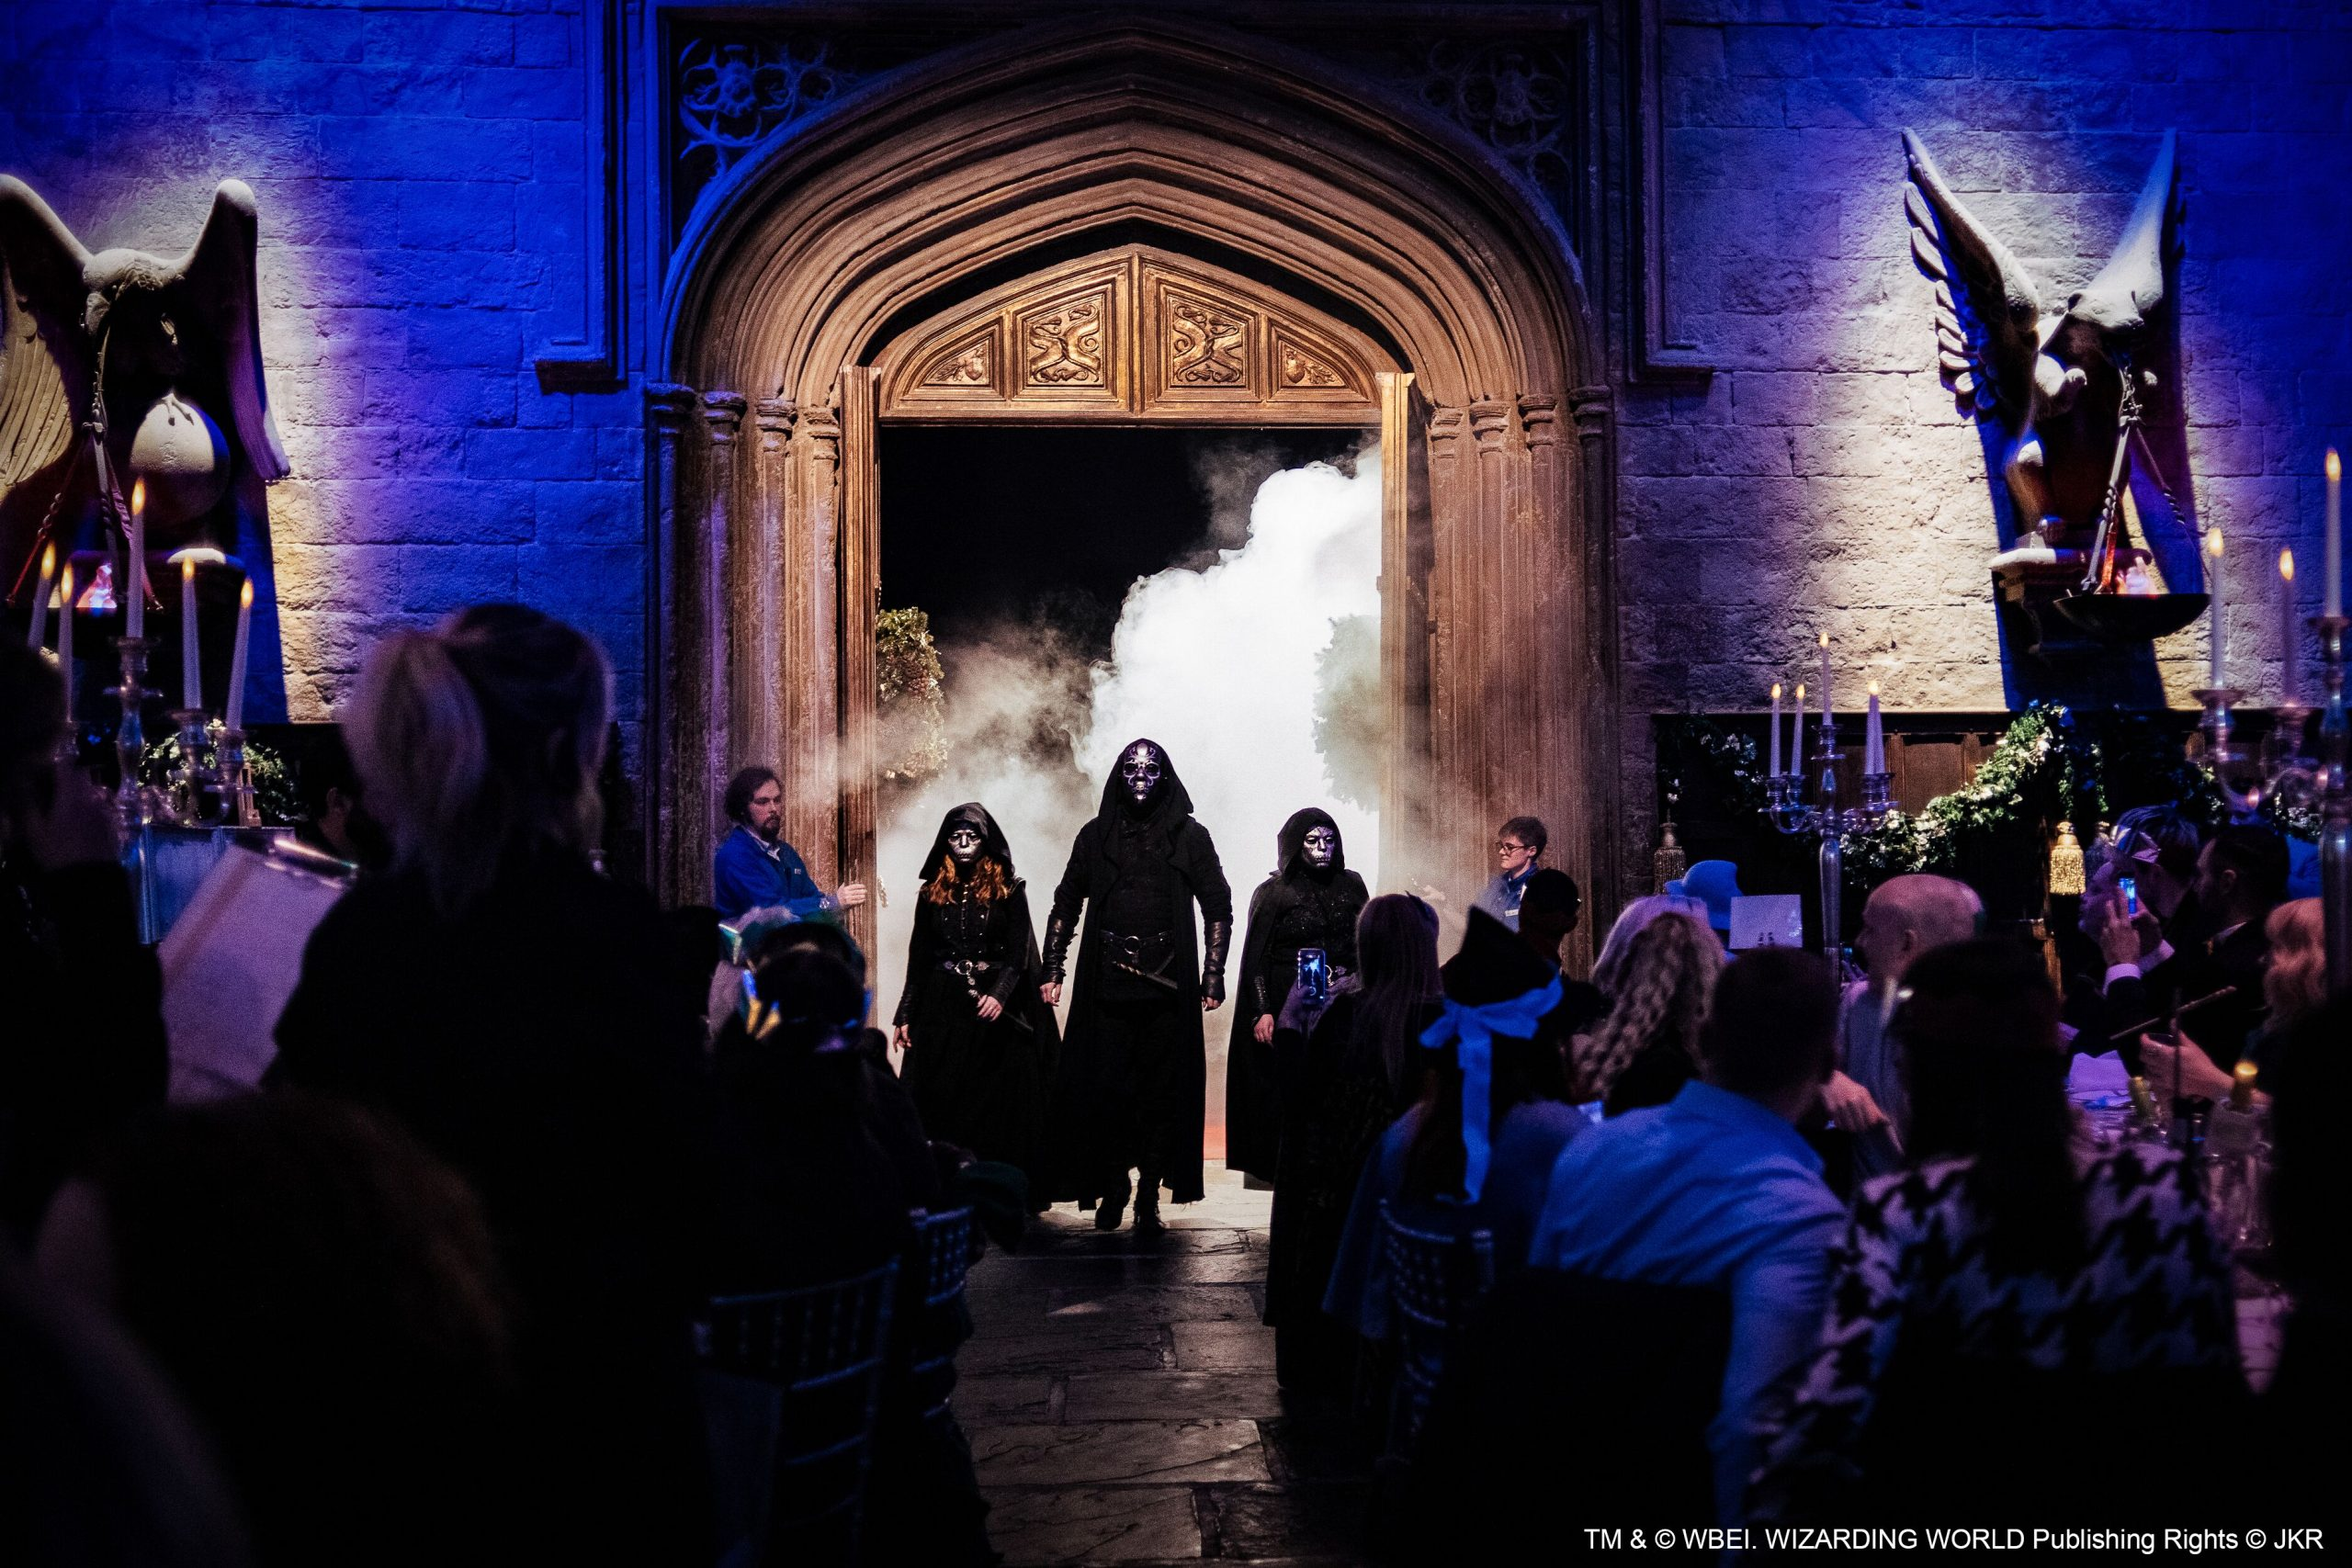 The feast even had a surprise mid-dinner visit from some party-crashing Death Eaters.